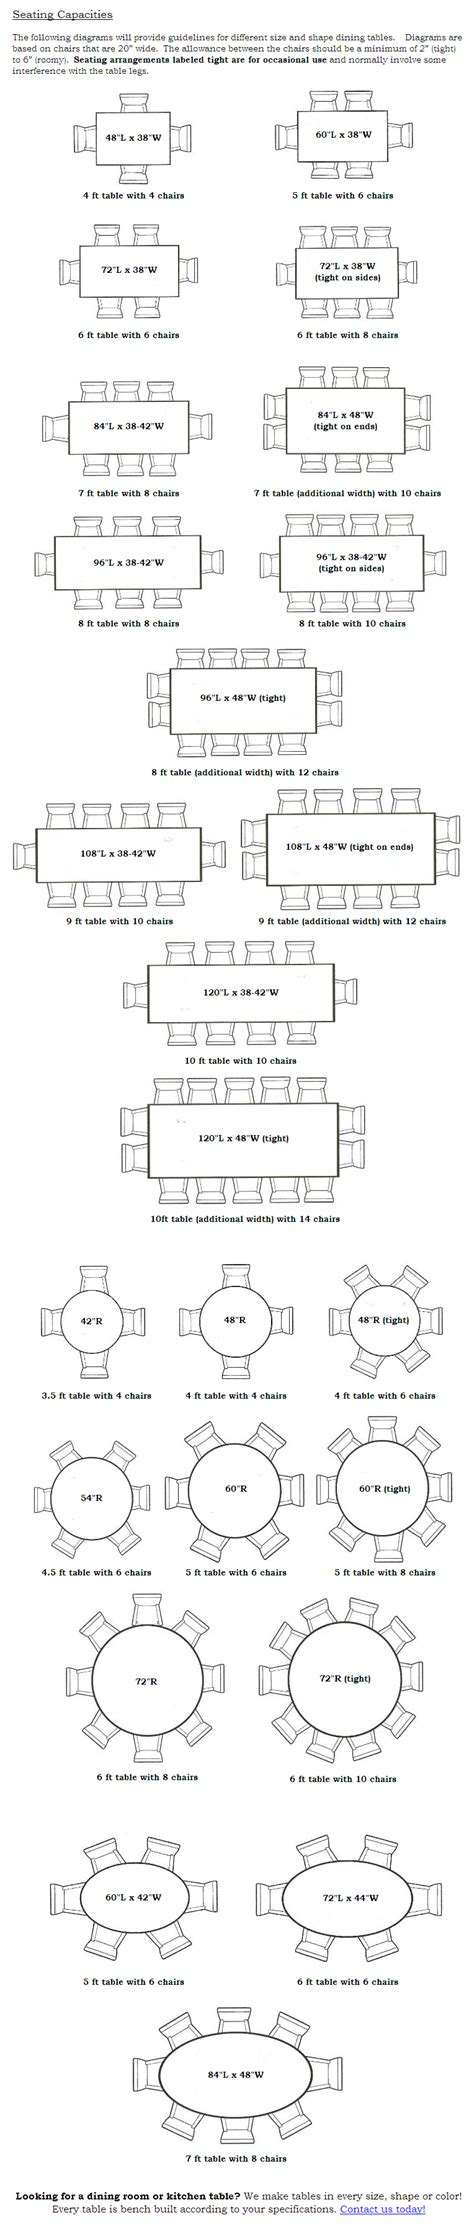 Dining Table Size Guide Dining Table Seating Capacities Chart By Size And Shape We How To Do It